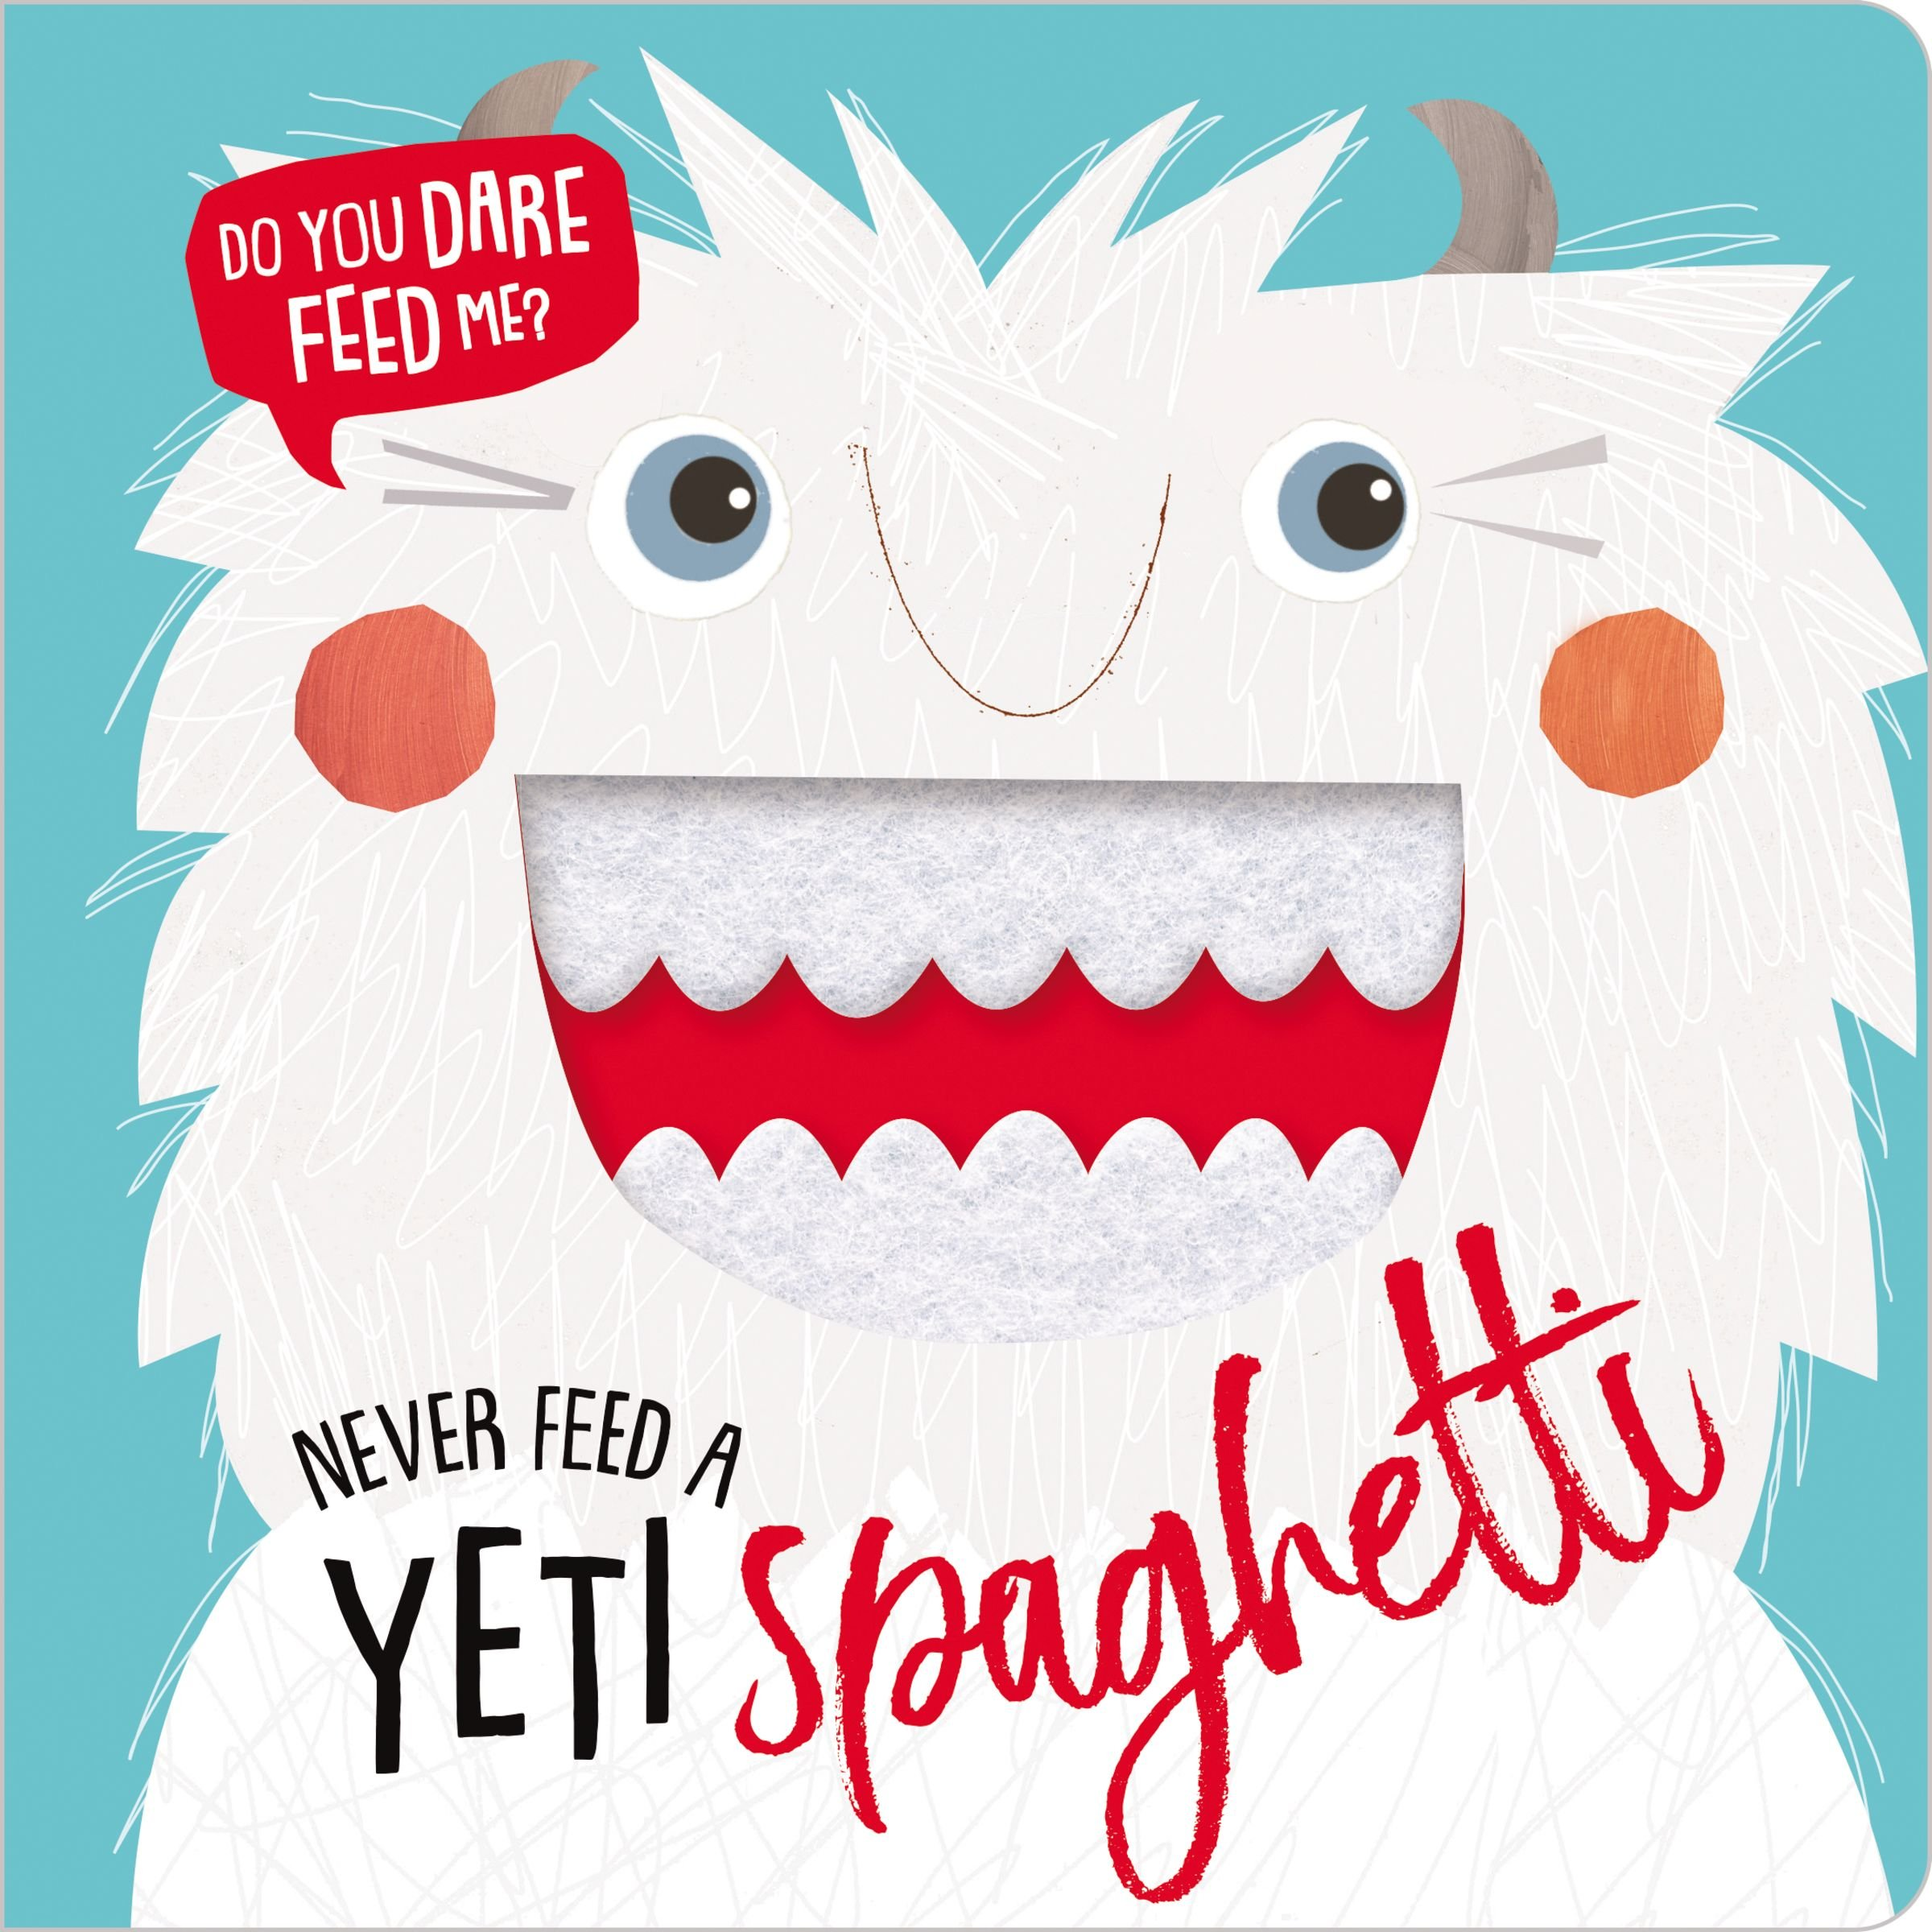 Never Feed a Yeti Spaghetti Book Only $4.25 after Coupon!